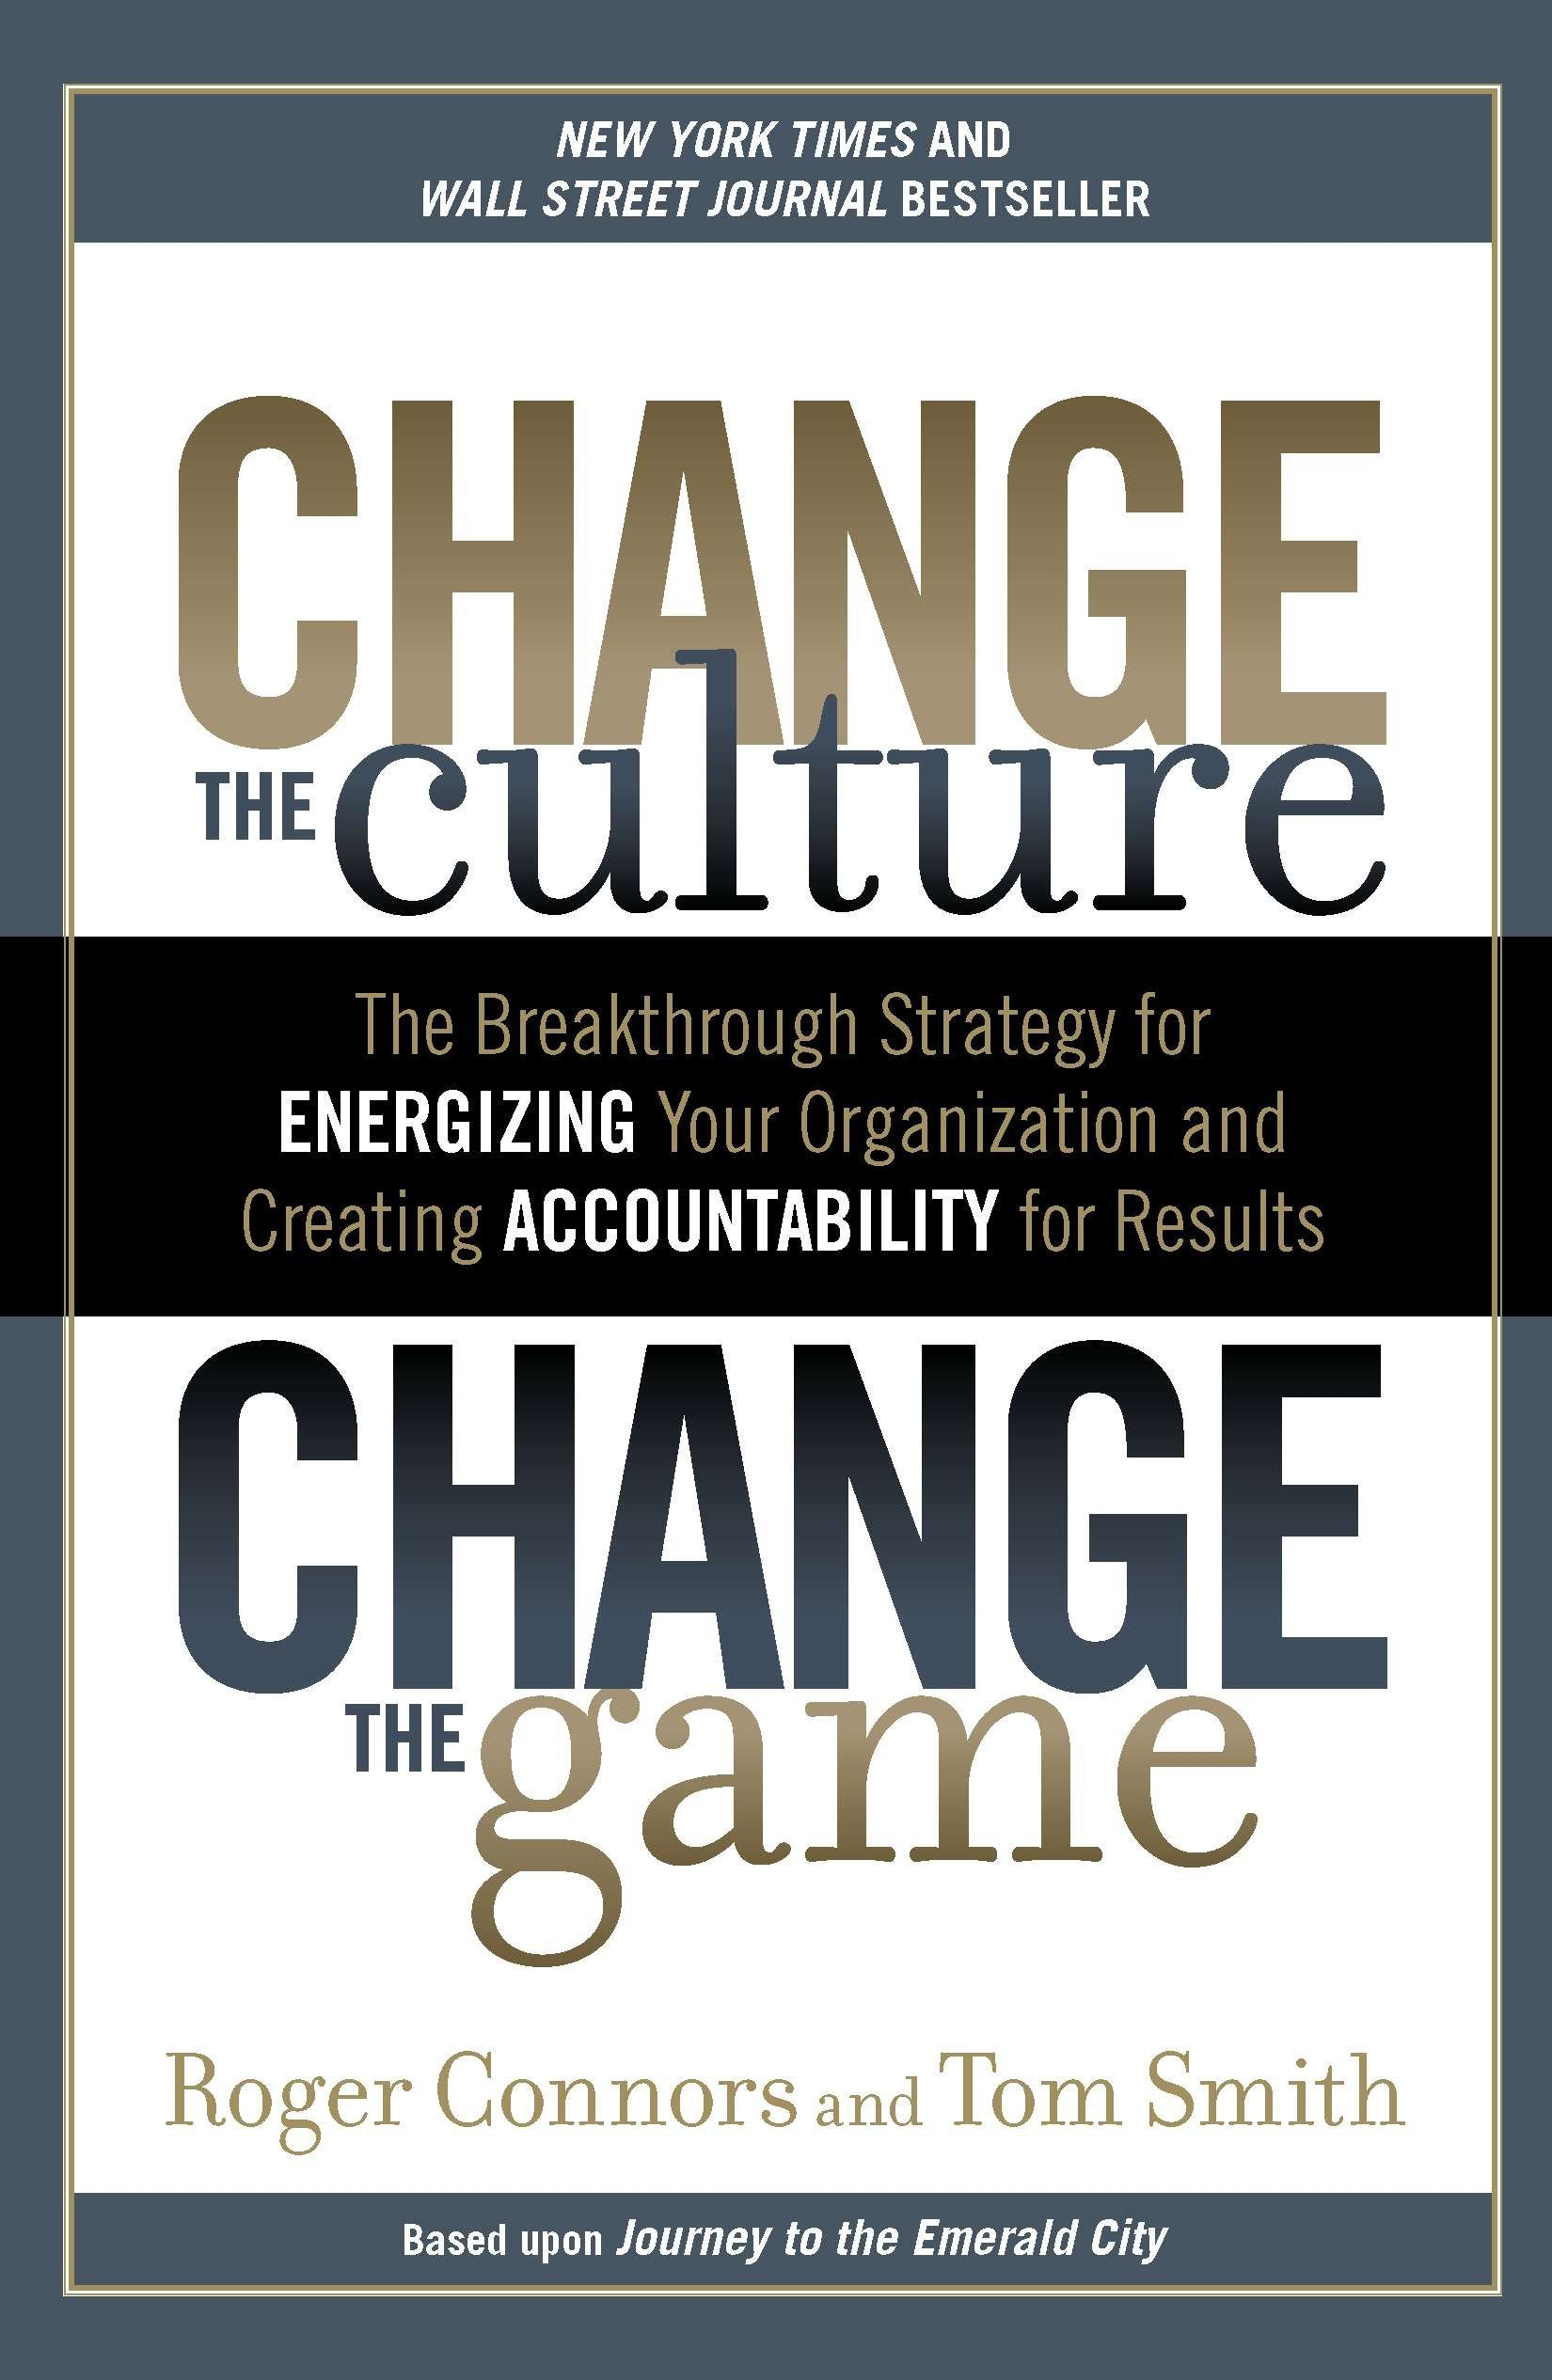 Amazon.com: Change the Culture, Change the Game: The Breakthrough Strategy  for Energizing Your Organization and Creating Accounta bility for Results  ...